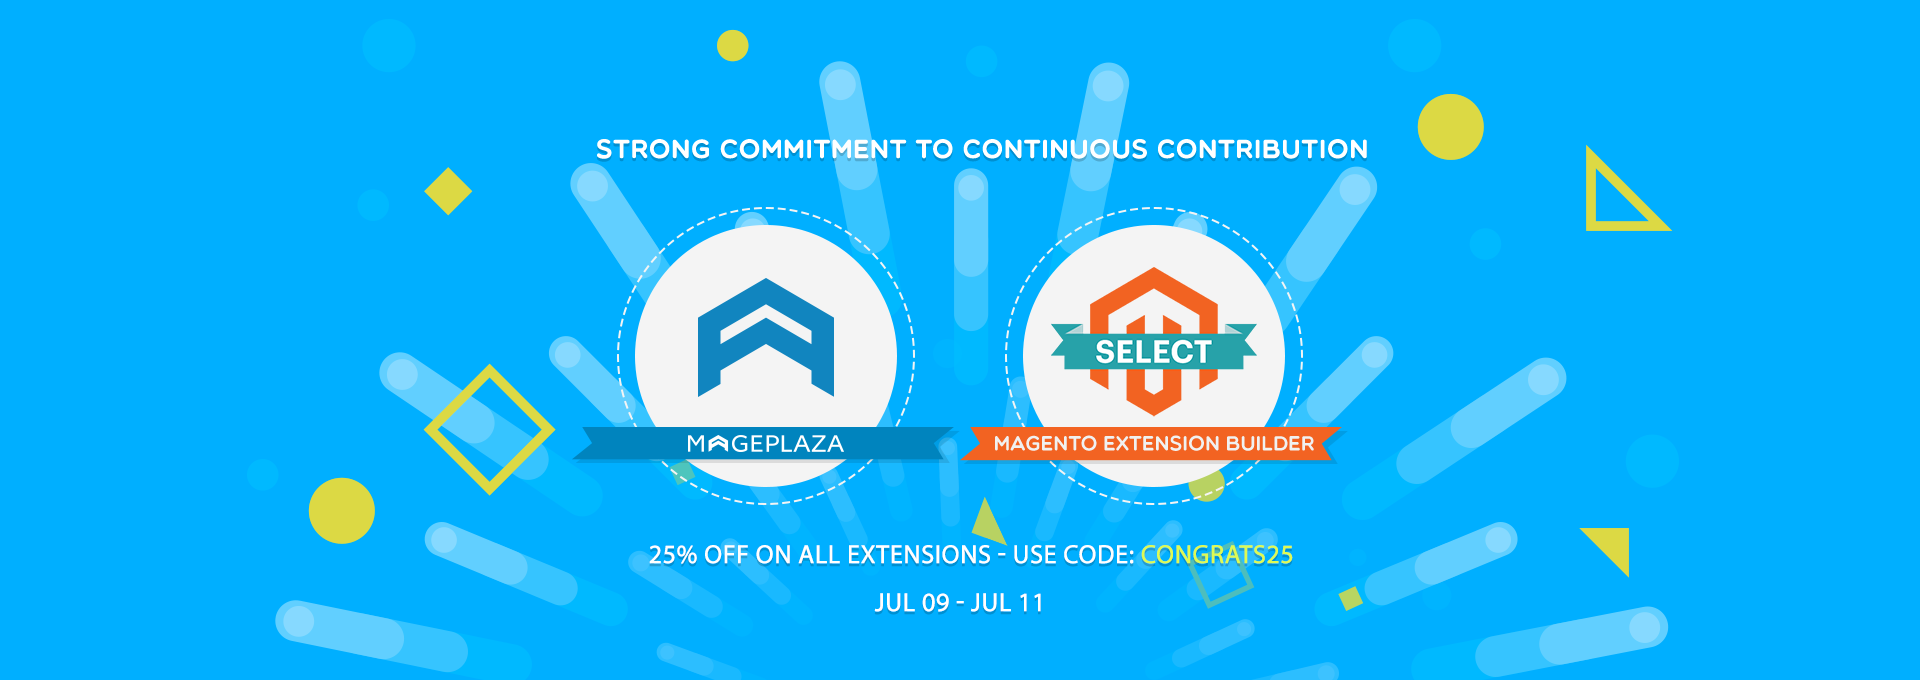 Mageplaza Is Now A Select Magento Extension Builder